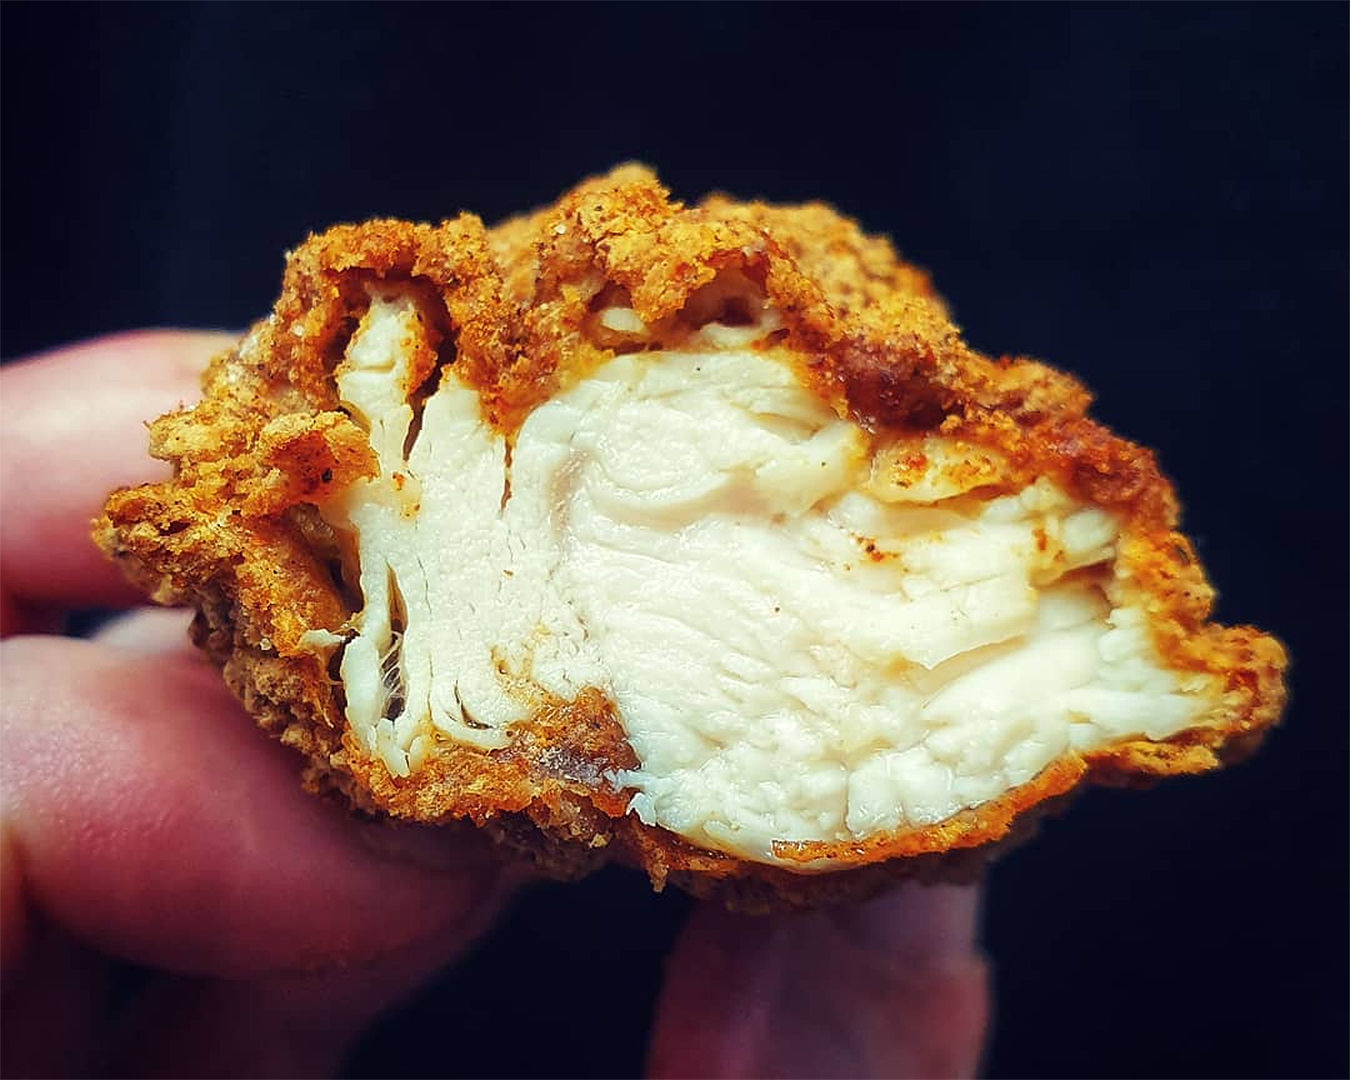 The cross section of a delicious piece of chicken.